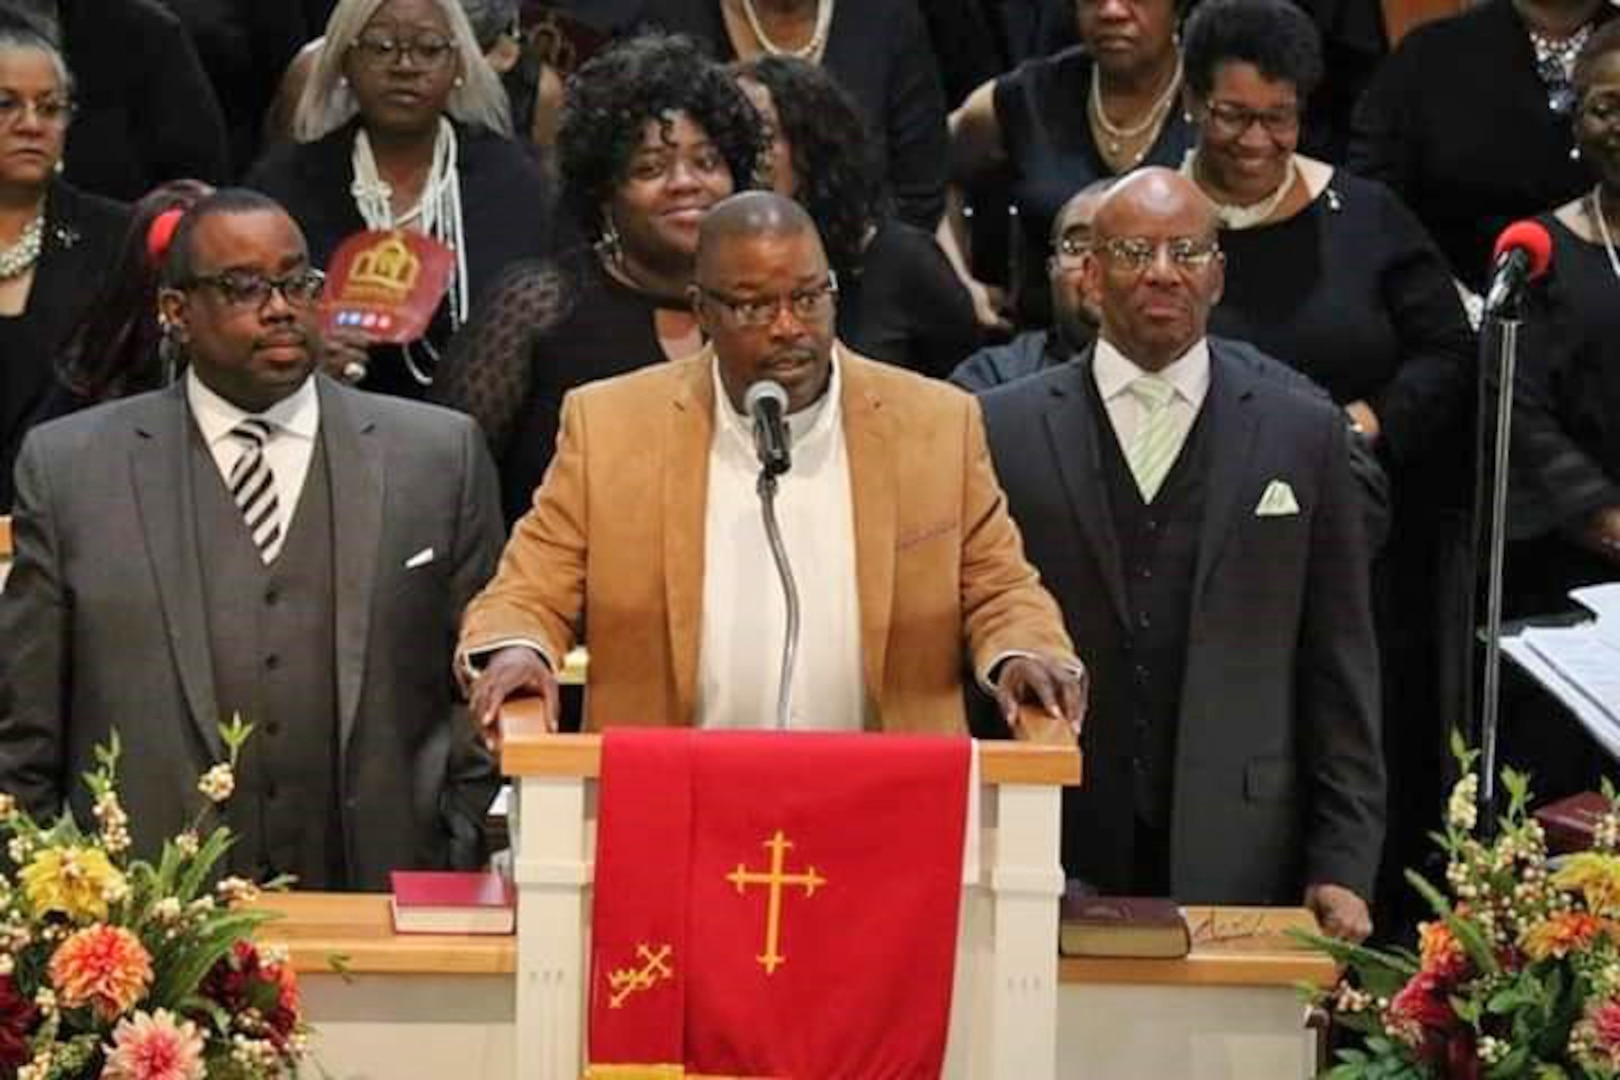 David Donald leads the 2020 Martin Luther King Jr. Community Day Celebration Service for Tabernacle Baptist Church in Petersburg, Virginia